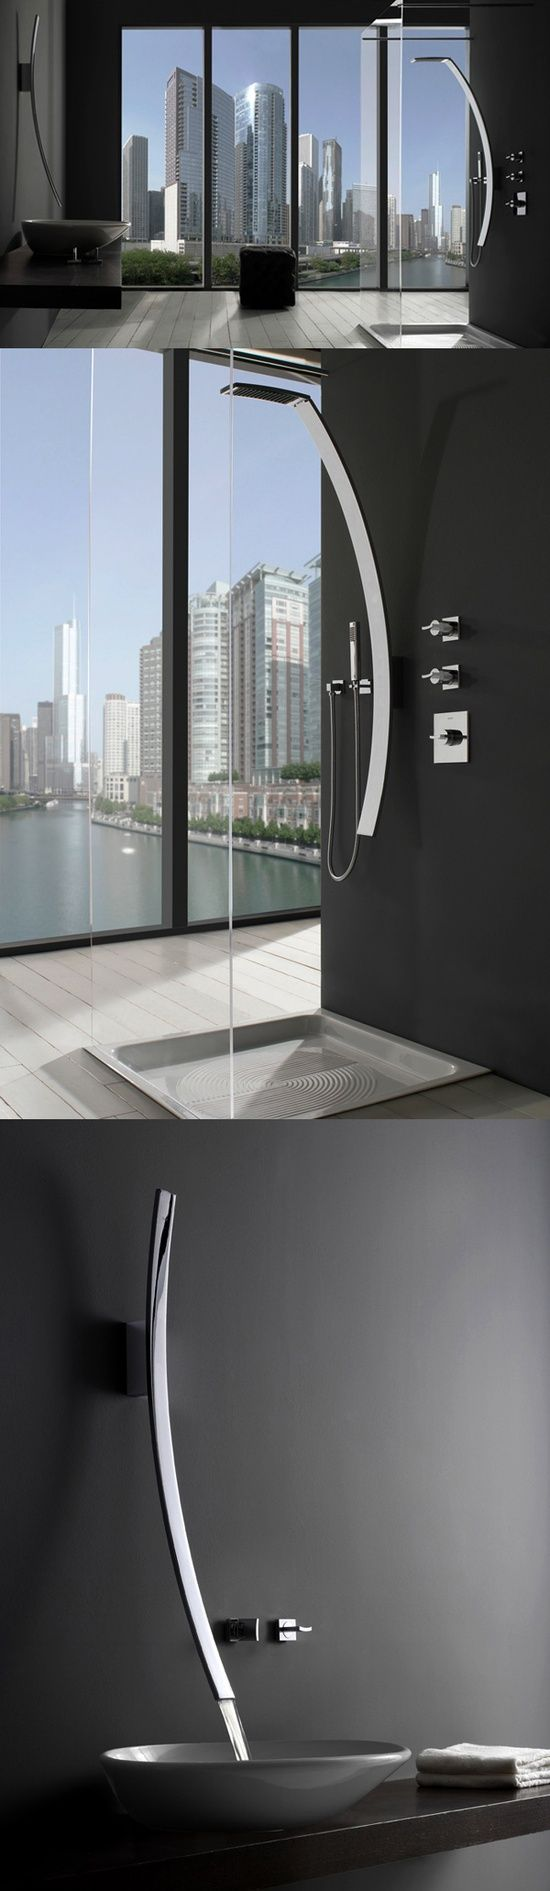 masculine u0026 elegance the lunar effect on faucets bathroom interior design from http - Faucetscom